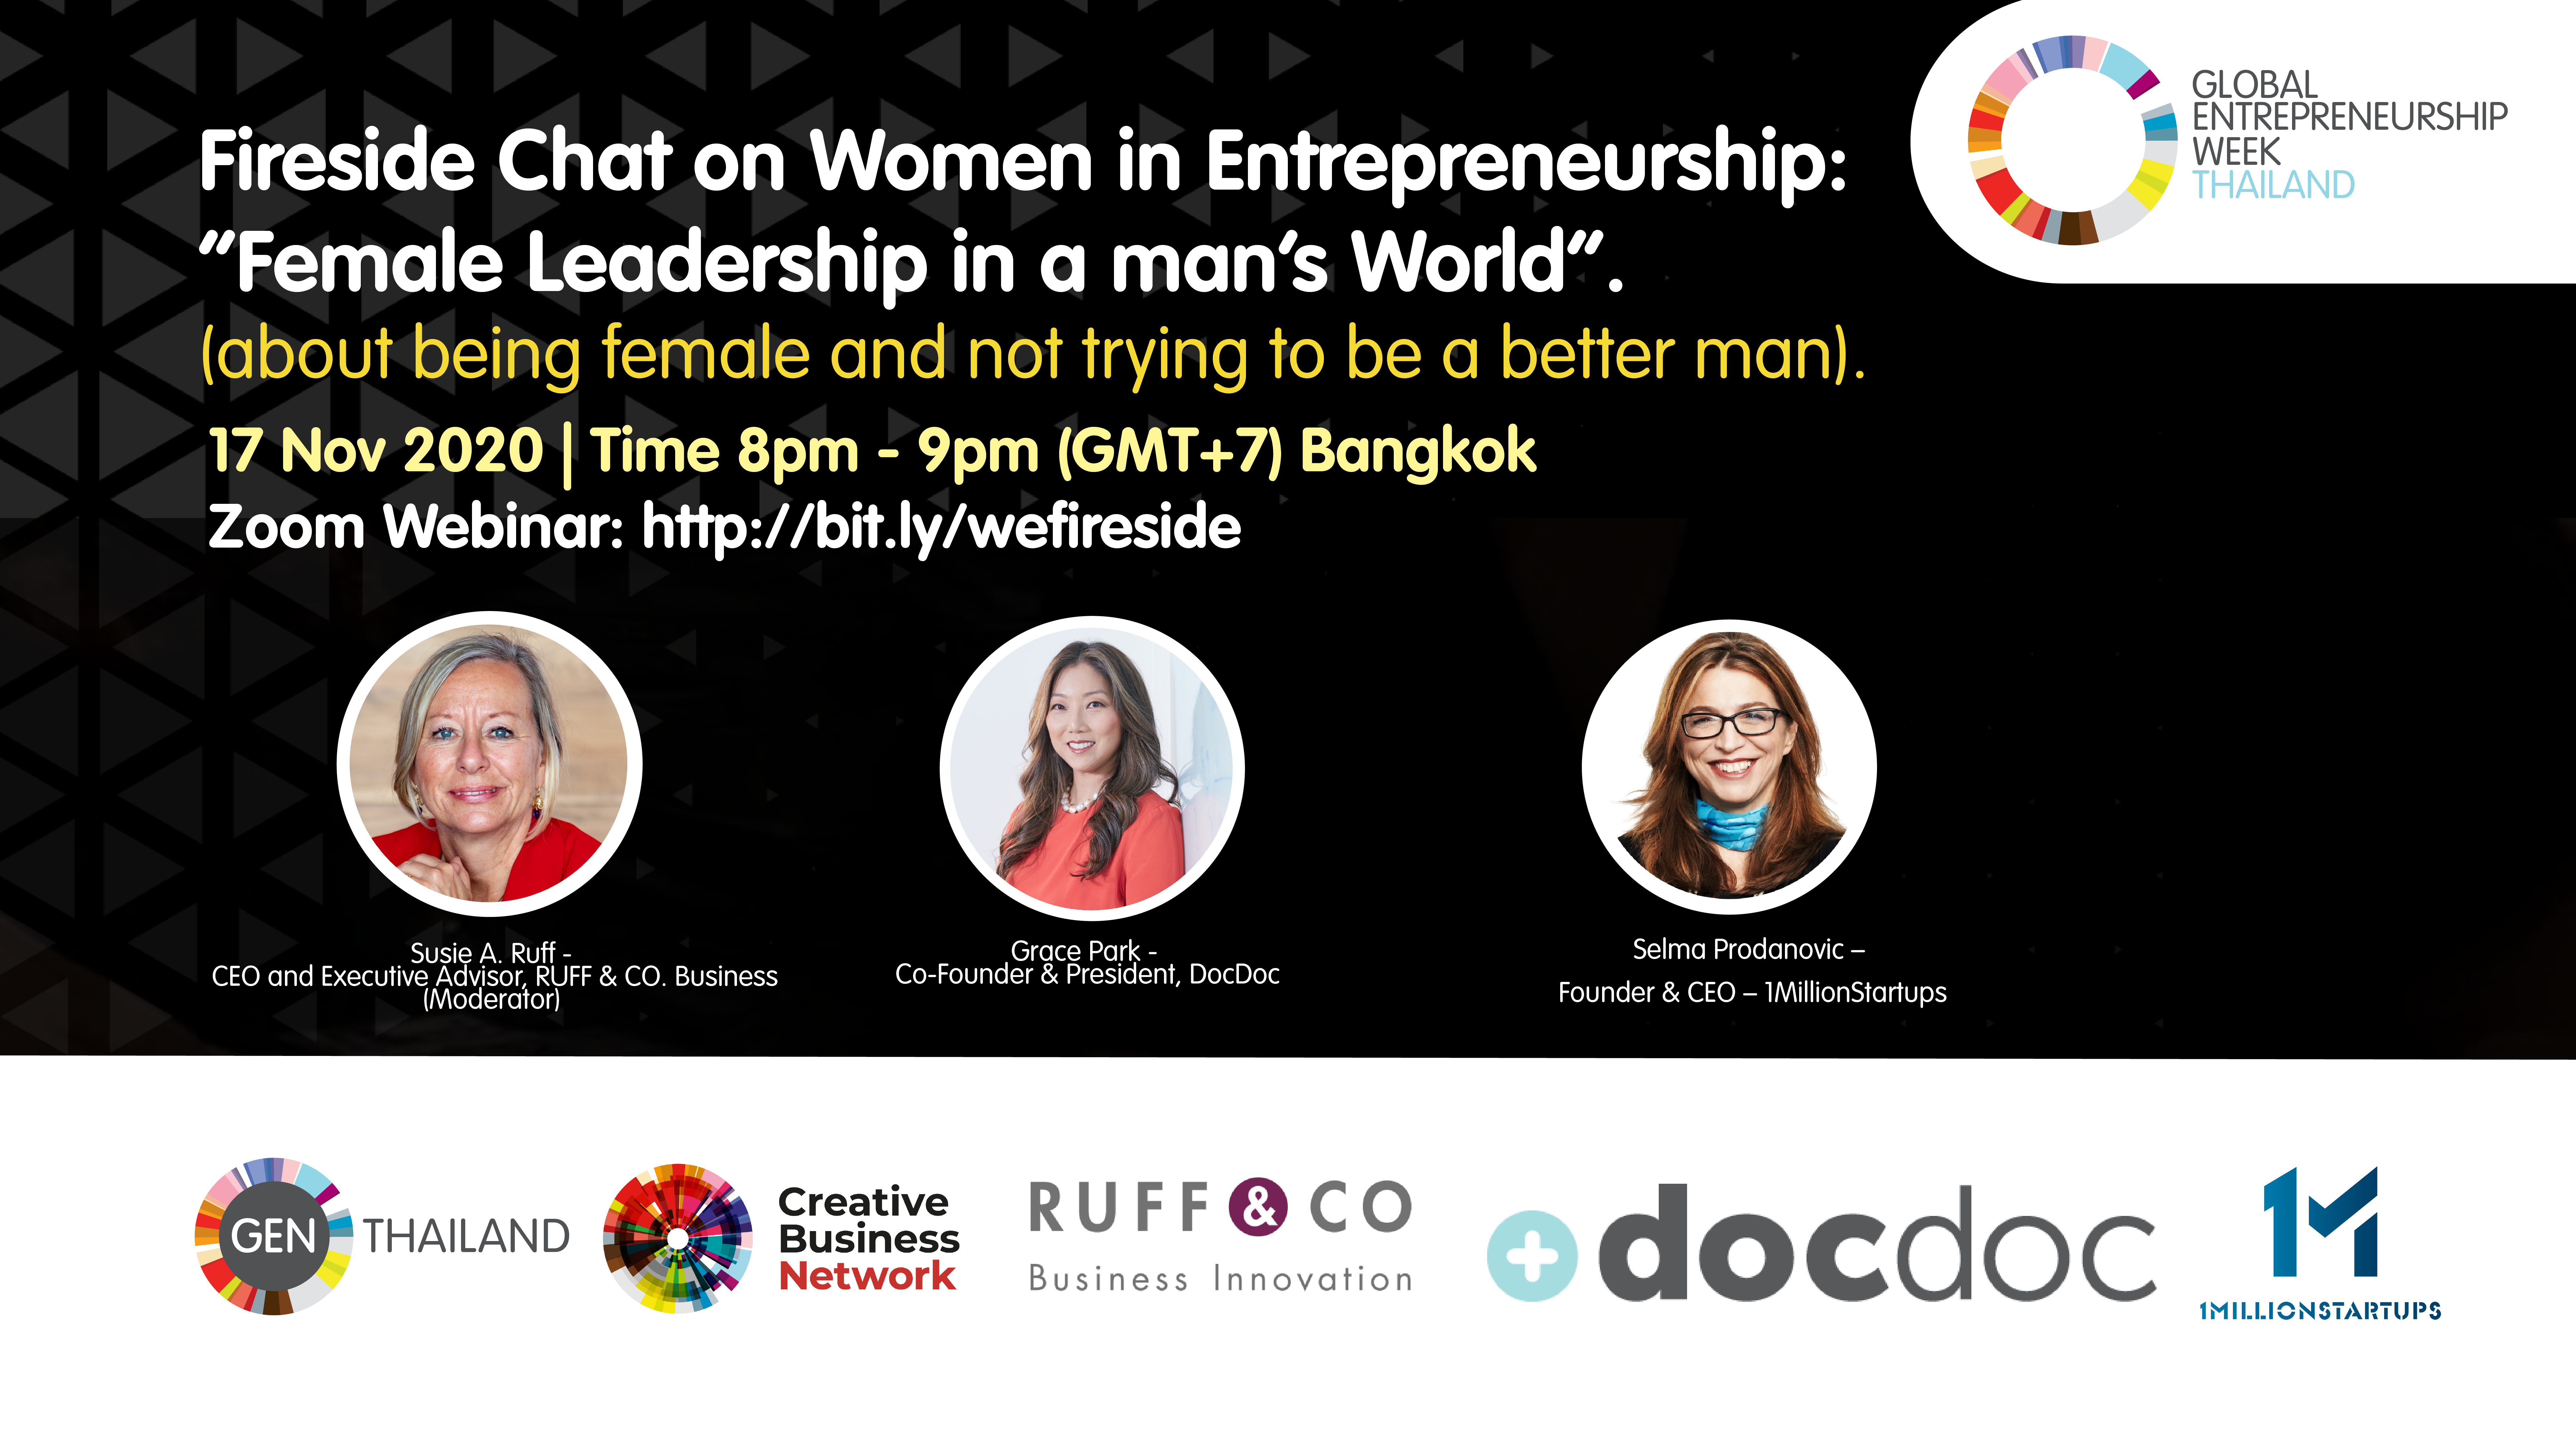 Fireside Chat on Women in Entrepreneurship